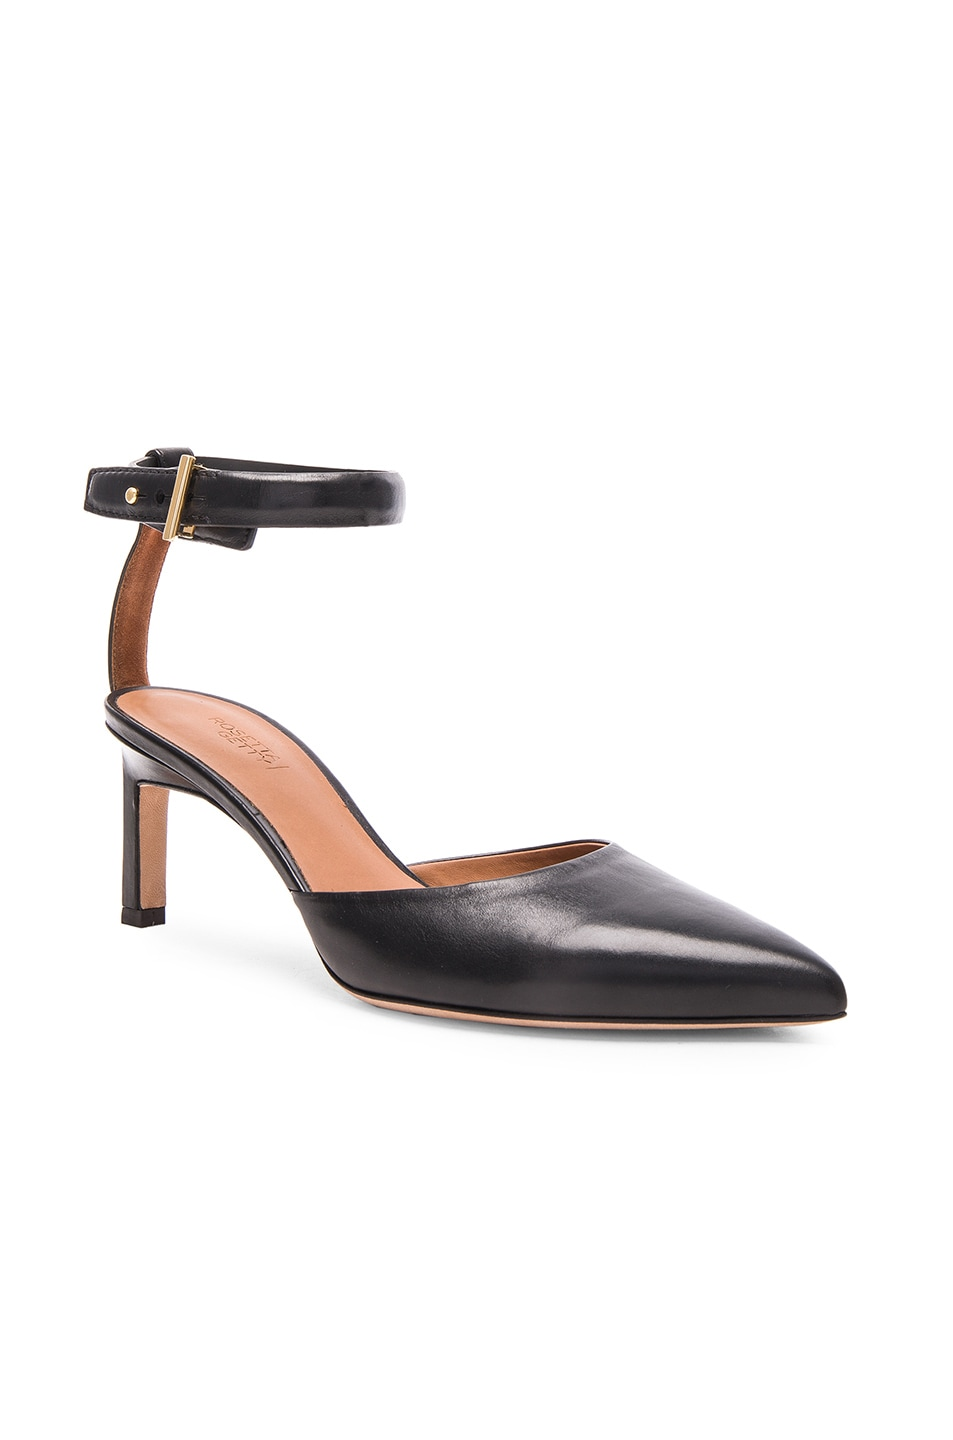 Image 2 of Rosetta Getty Leather Pointed Mid Heels in Black